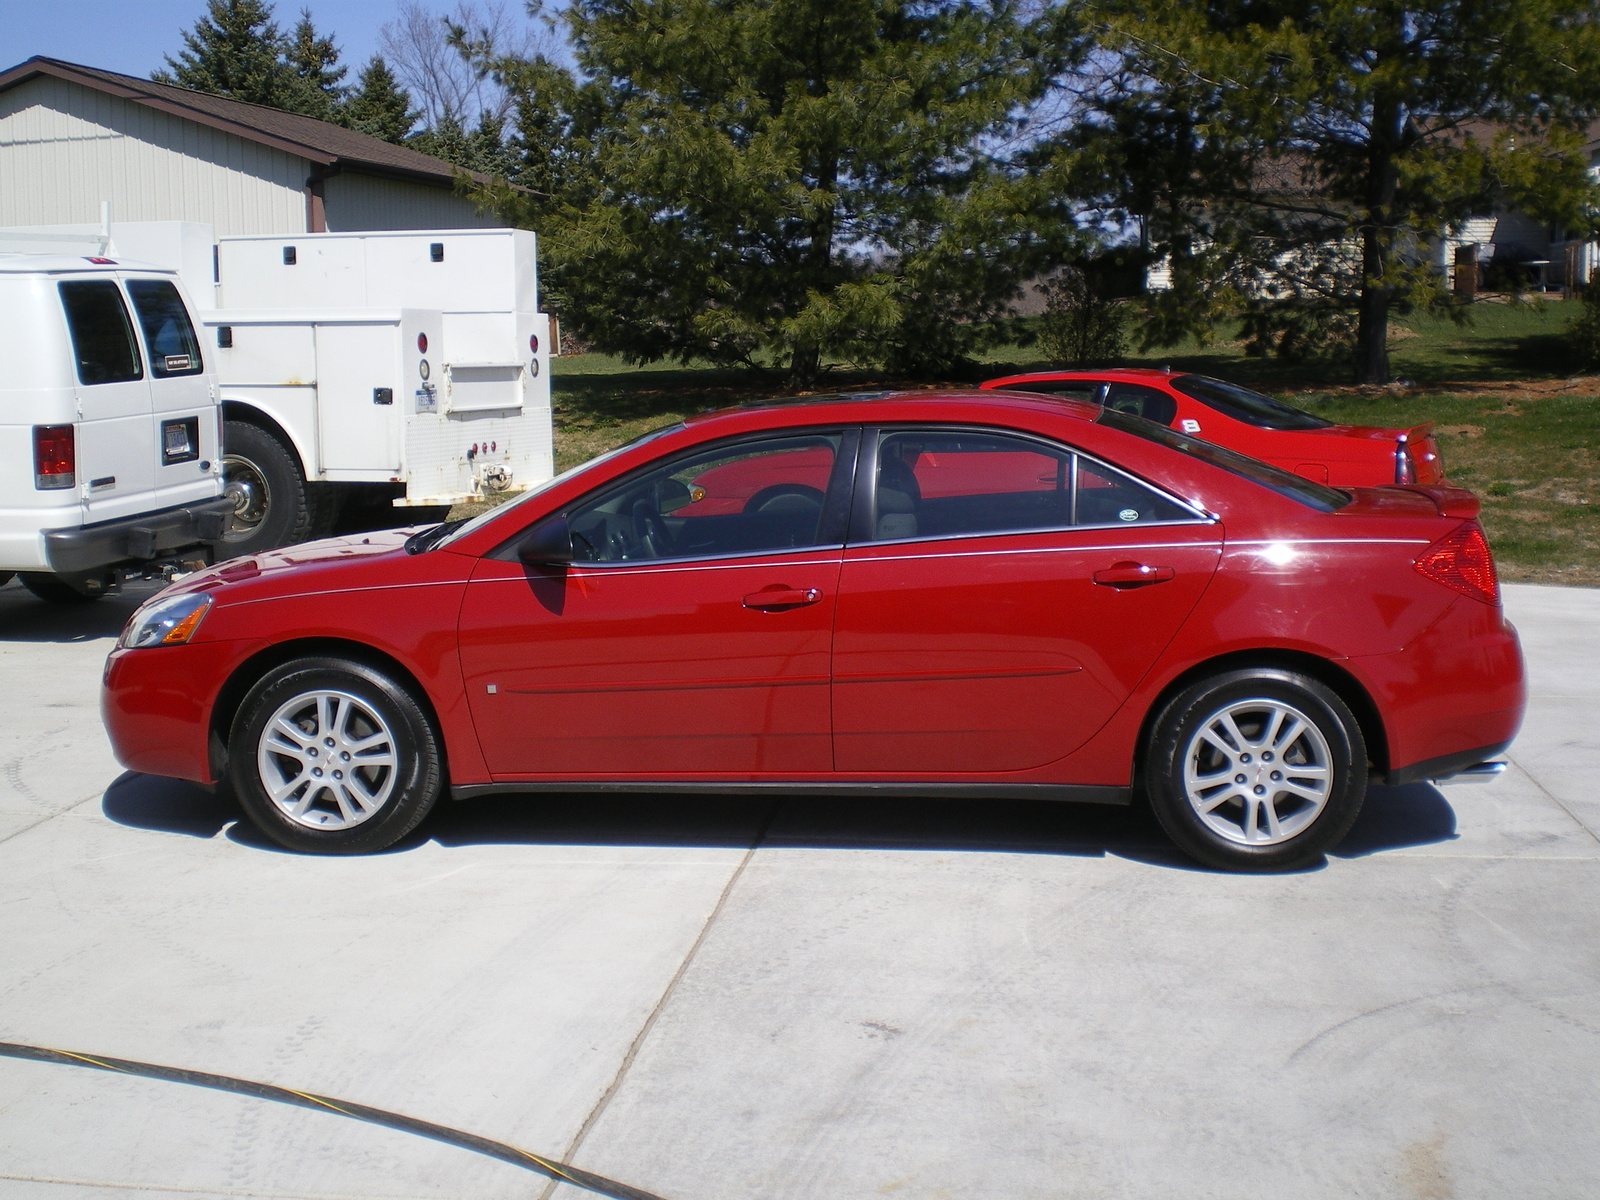 2006 Pontiac G6 Other Pictures Cargurus